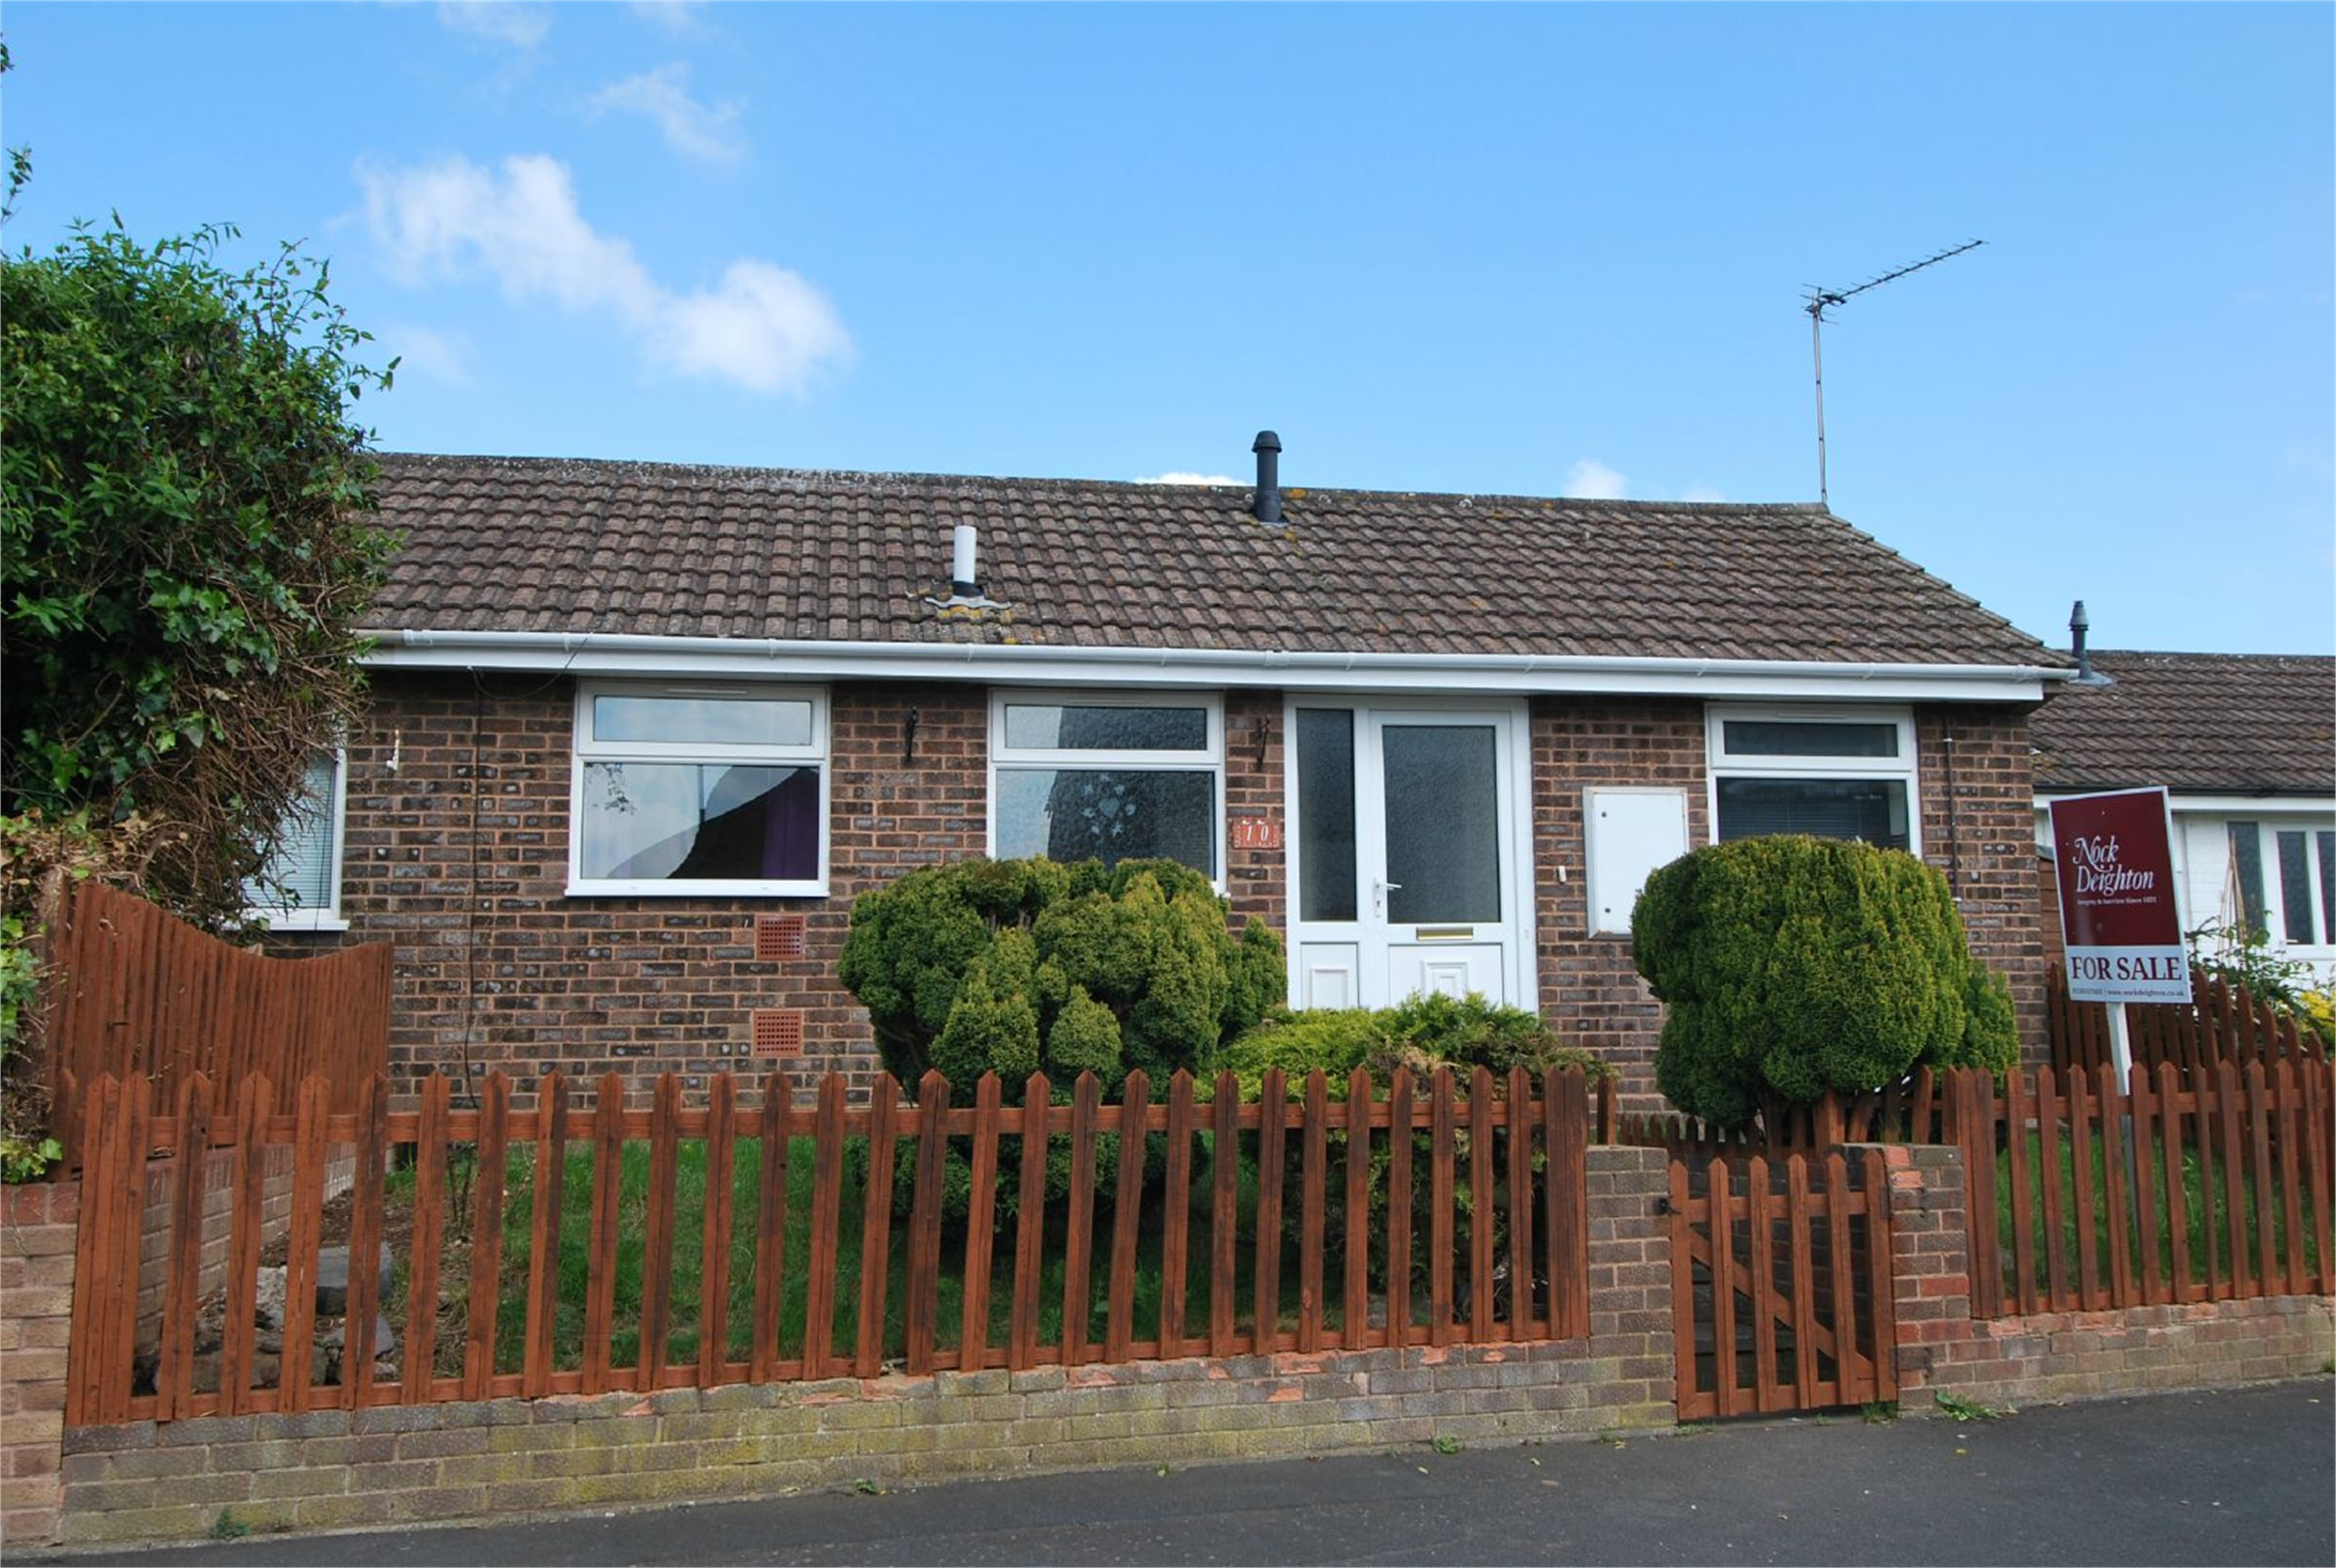 2 Bedrooms Semi Detached Bungalow for sale in 10 Ebnal Close, Leominster, Herefordshire, HR6